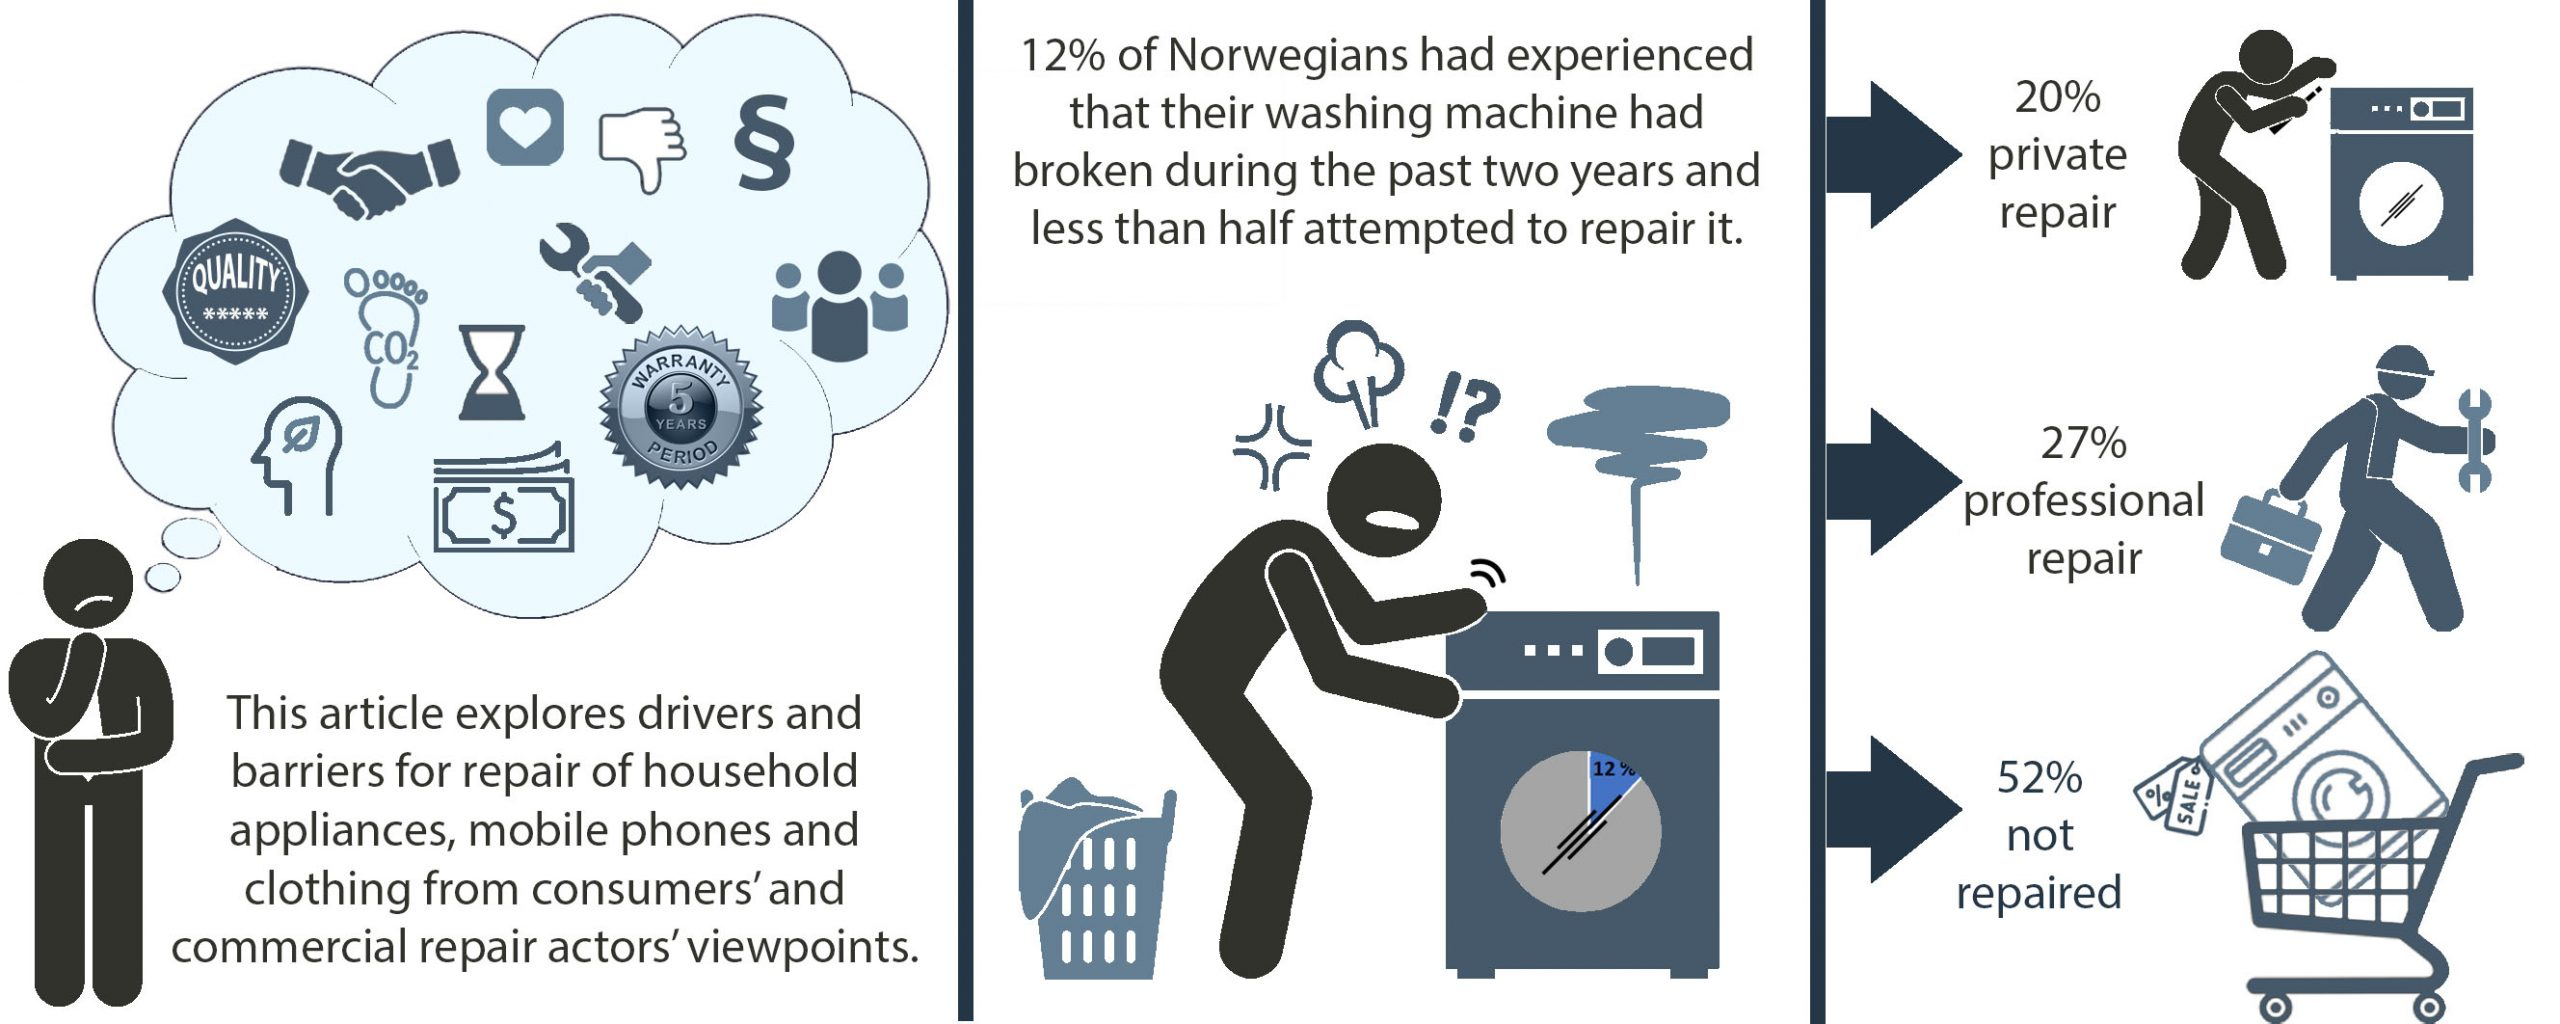 Graphical abstract shows person considering whether to repair a washing machine or not. 12% had esperinec their washing machin breaking during the past to years and less than half were attempted repair.